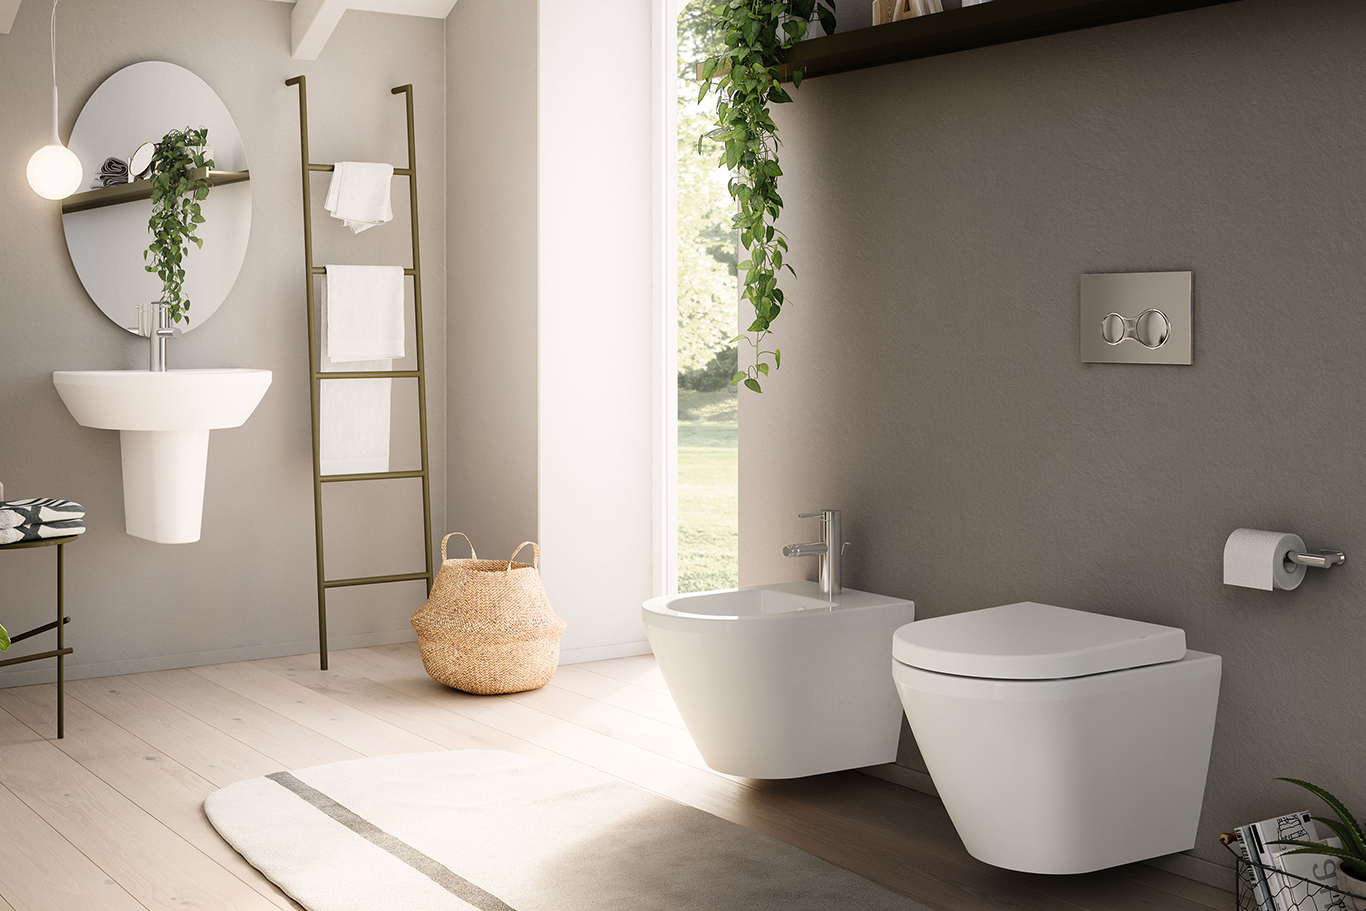 Aesthetic and comfortable designs from VitrA | VitrA UK